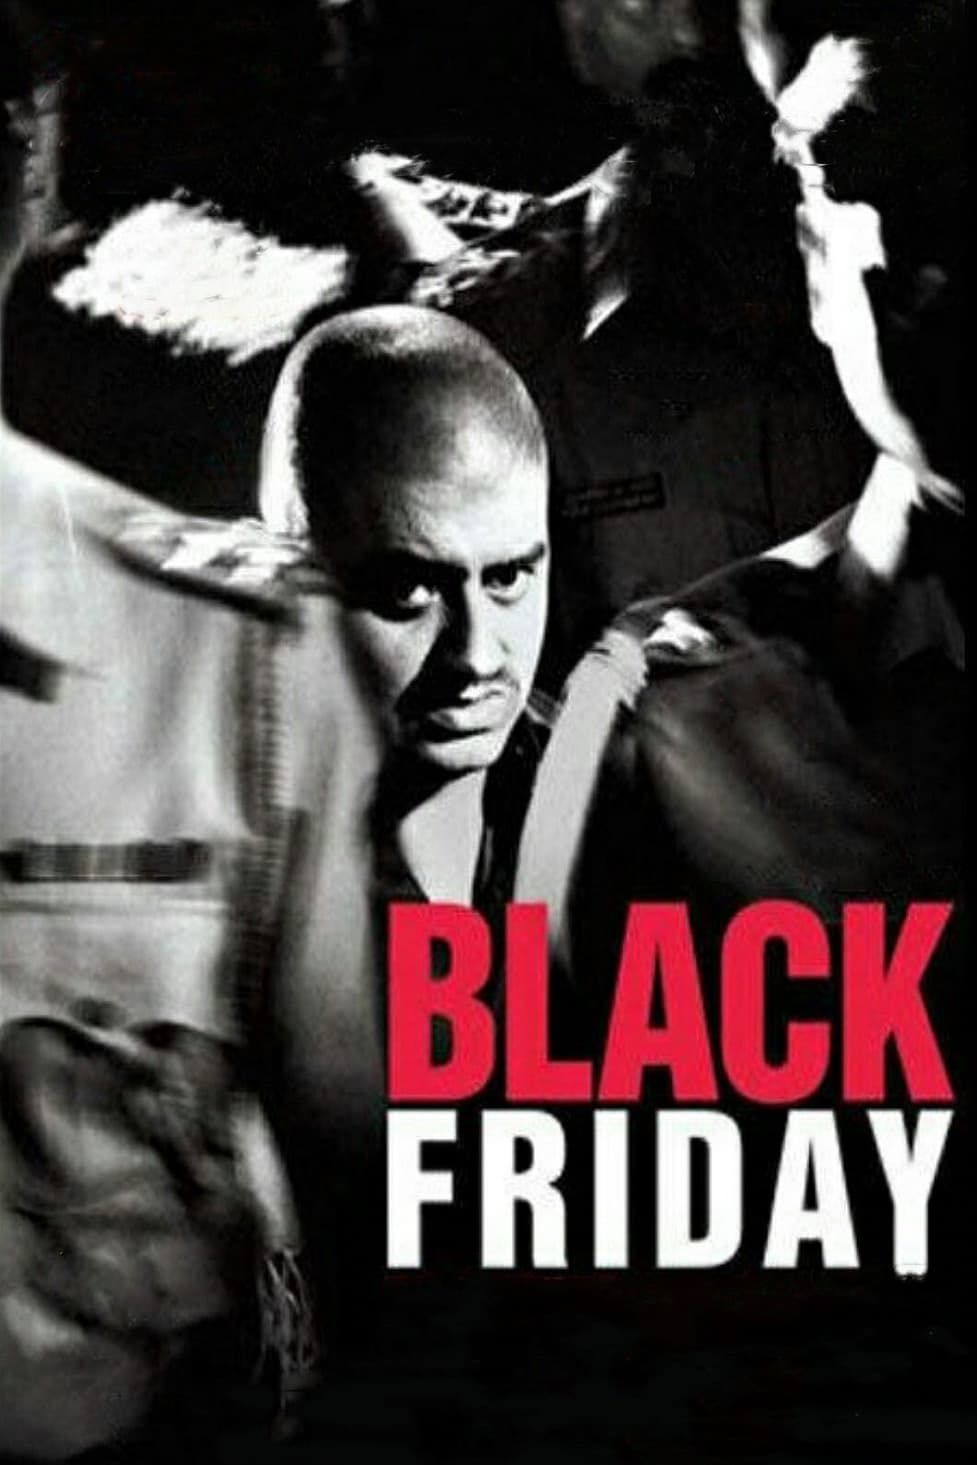 download black friday full movie in 720p